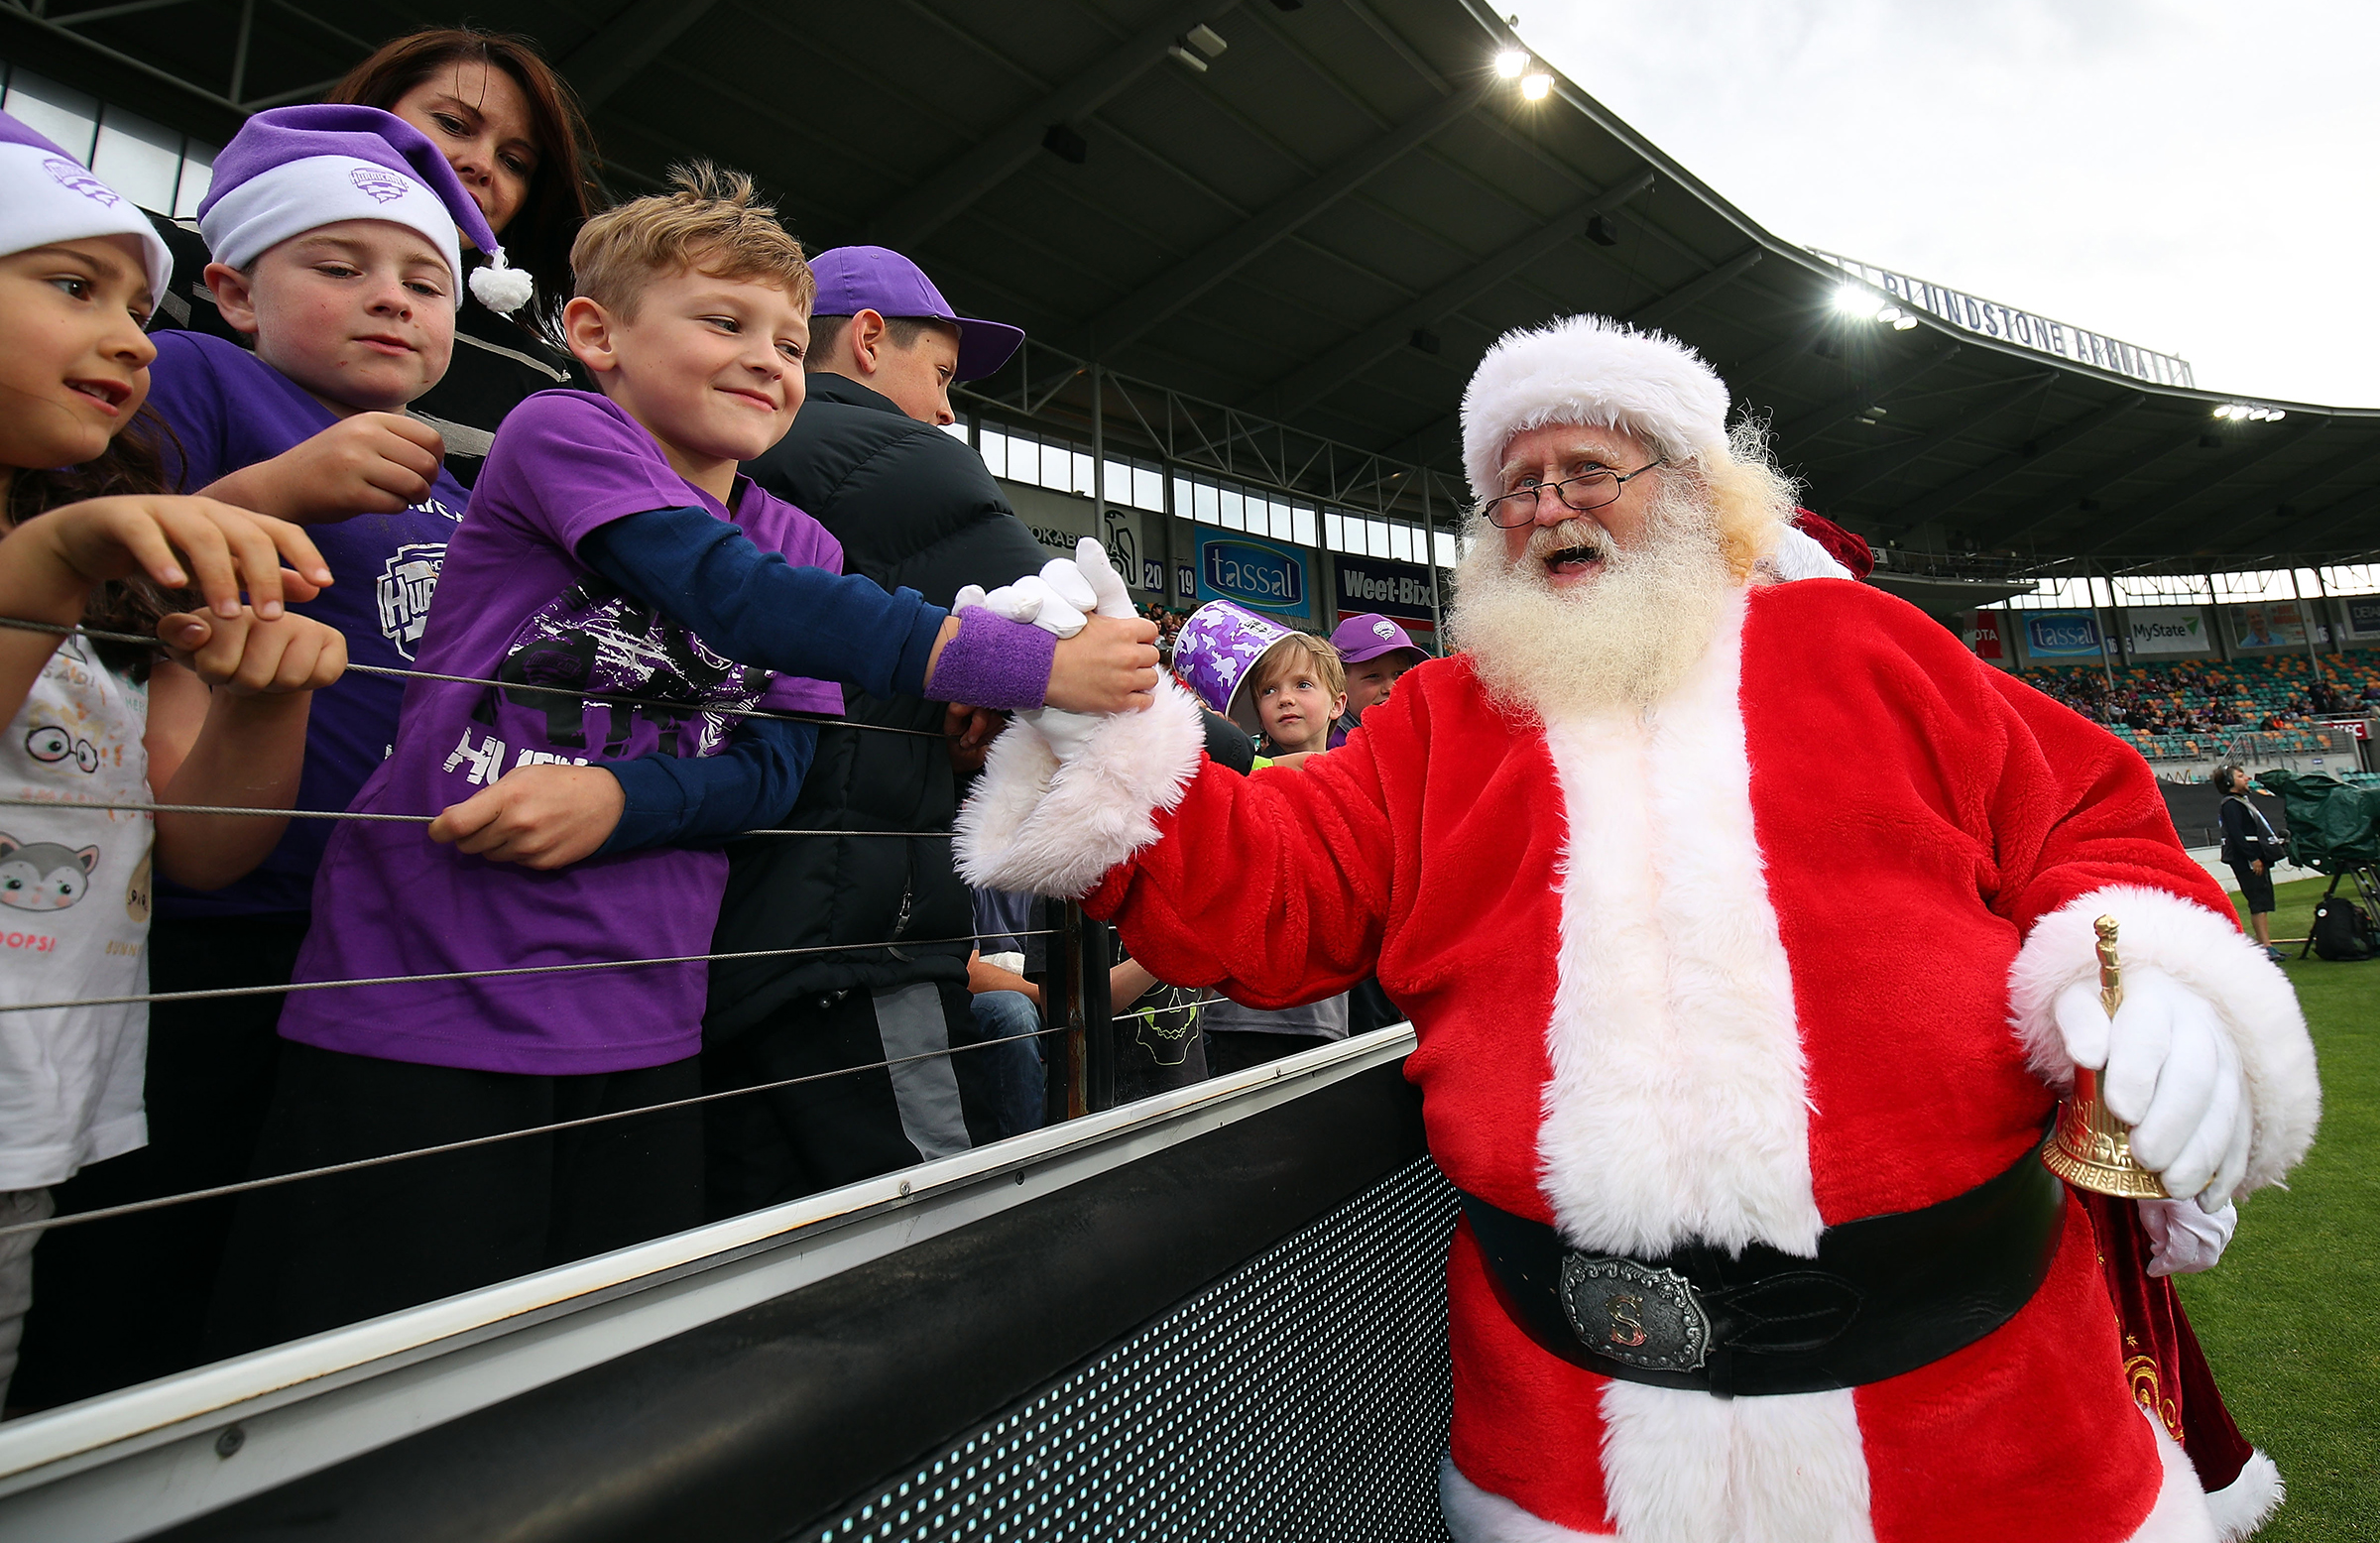 Santa greets the fans at Blundstone Arena last season // Getty